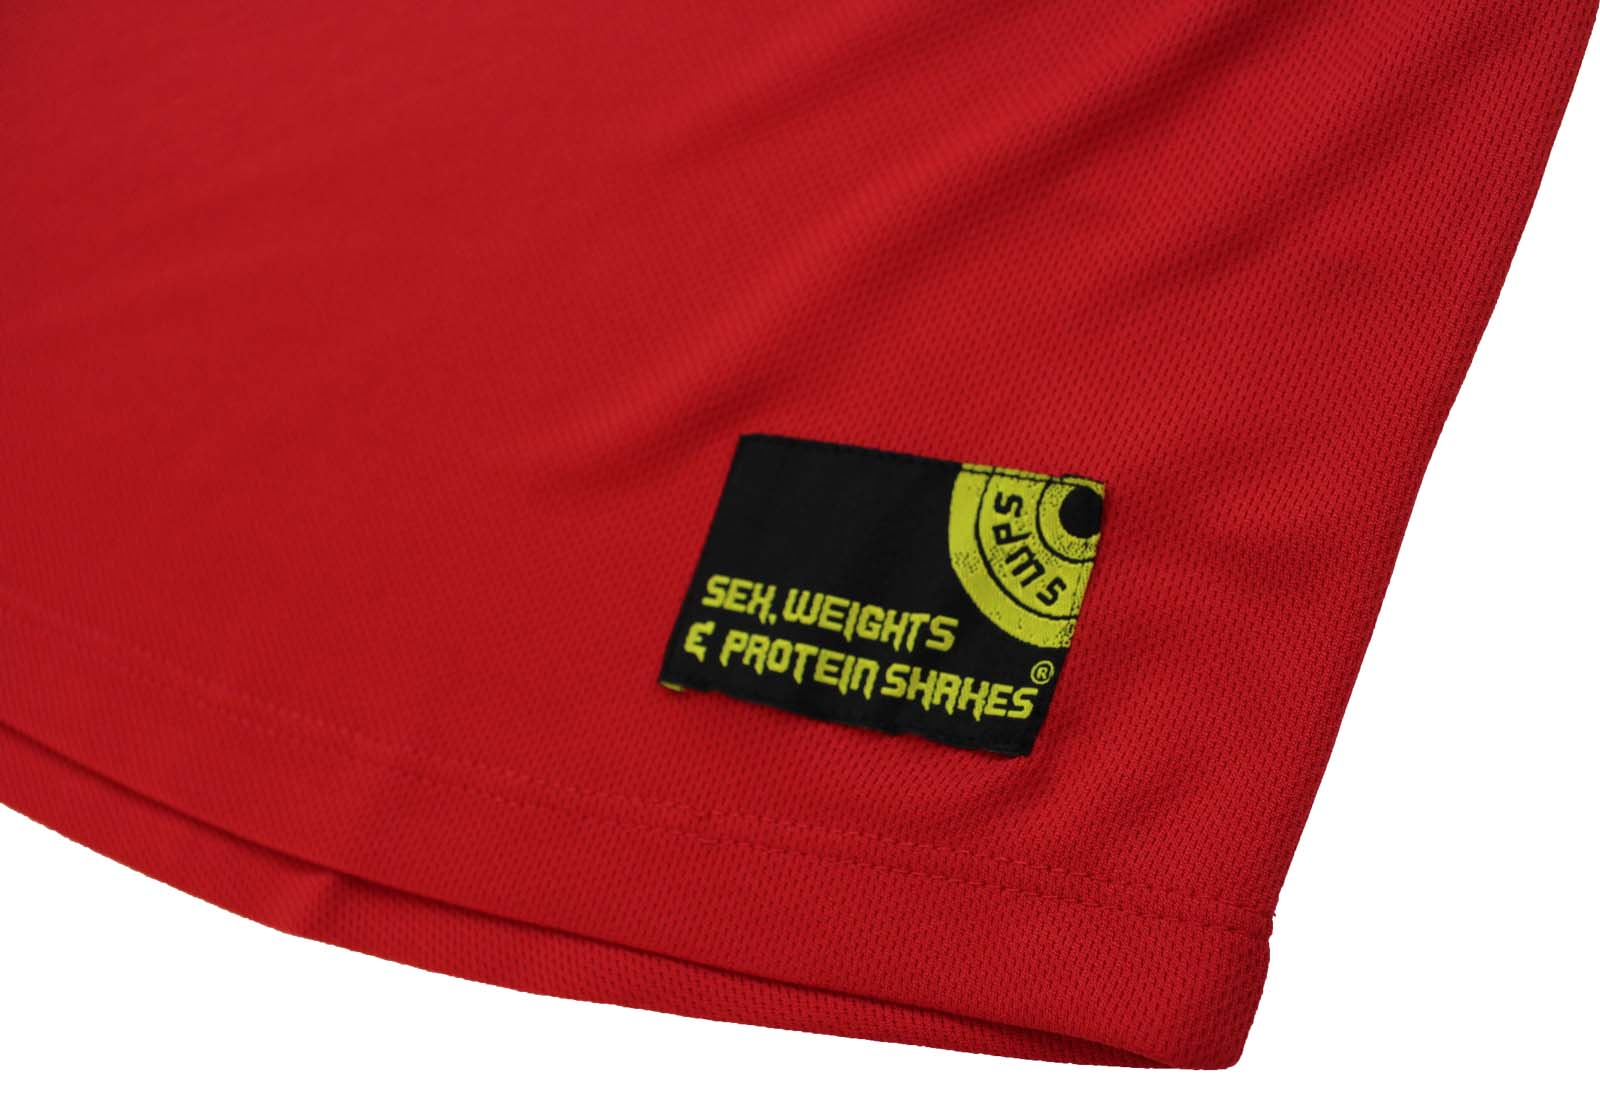 NECK T-SHIRT Premium Dry Fit Breathable Sports V Push Your Limits SWPS